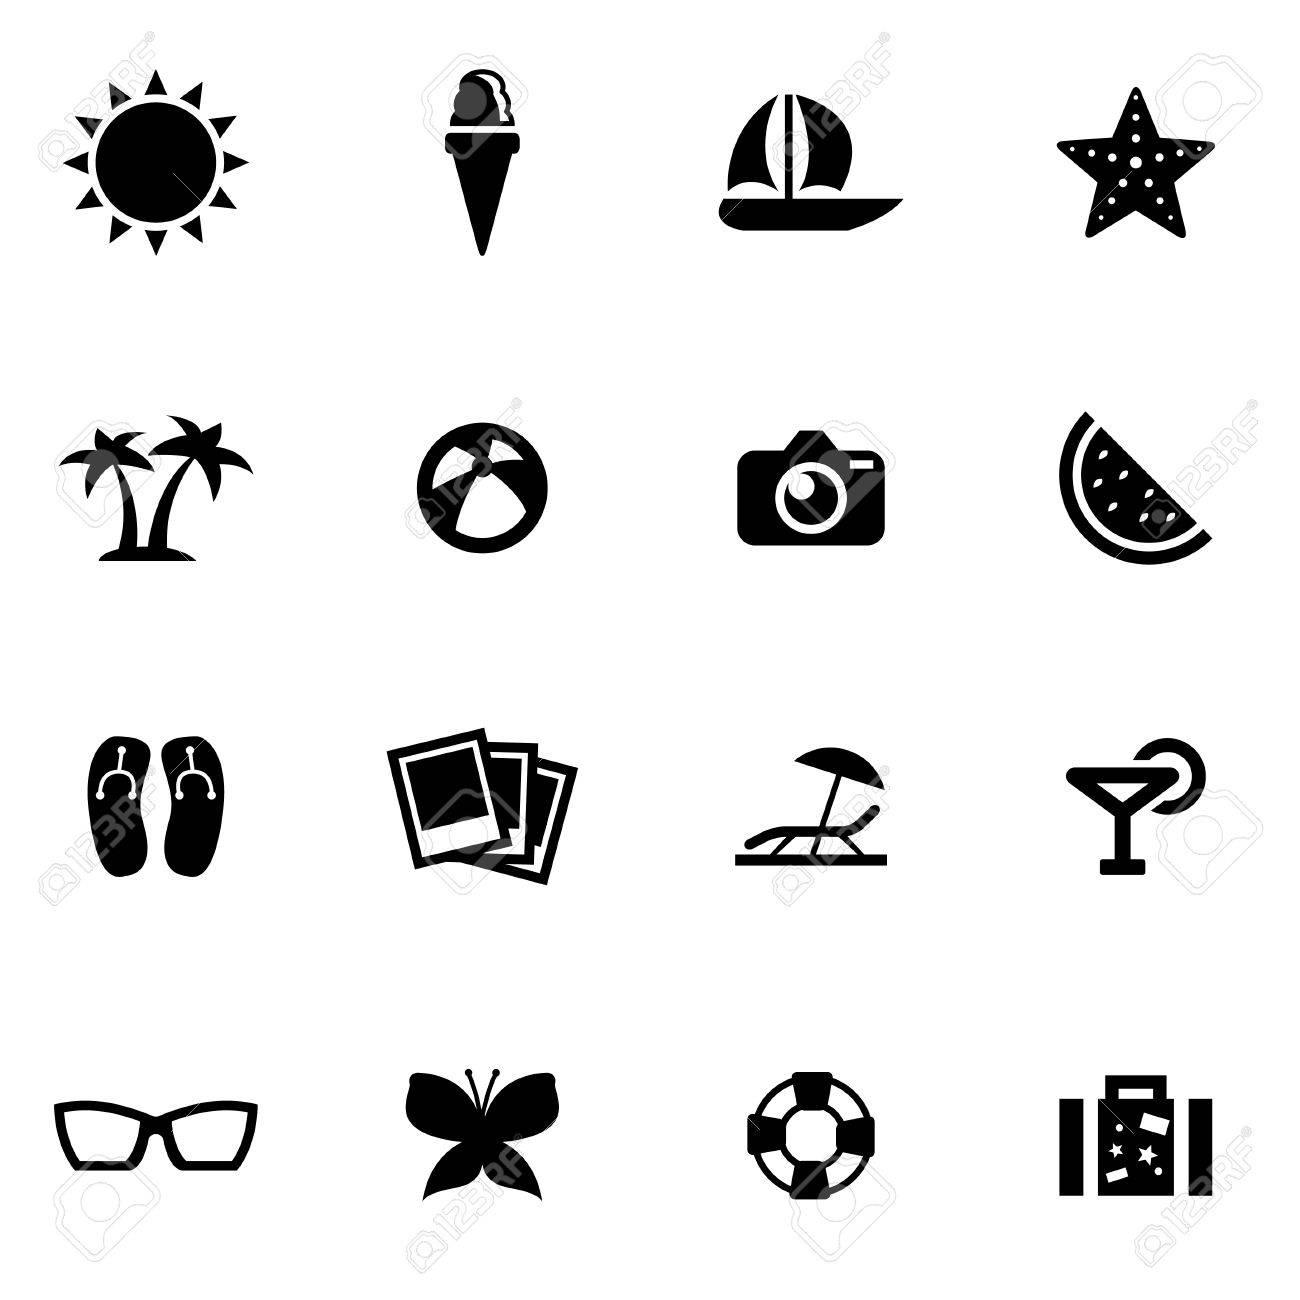 vector black summer icon set on white background royalty free cliparts vectors and stock illustration image 42713477 vector black summer icon set on white background